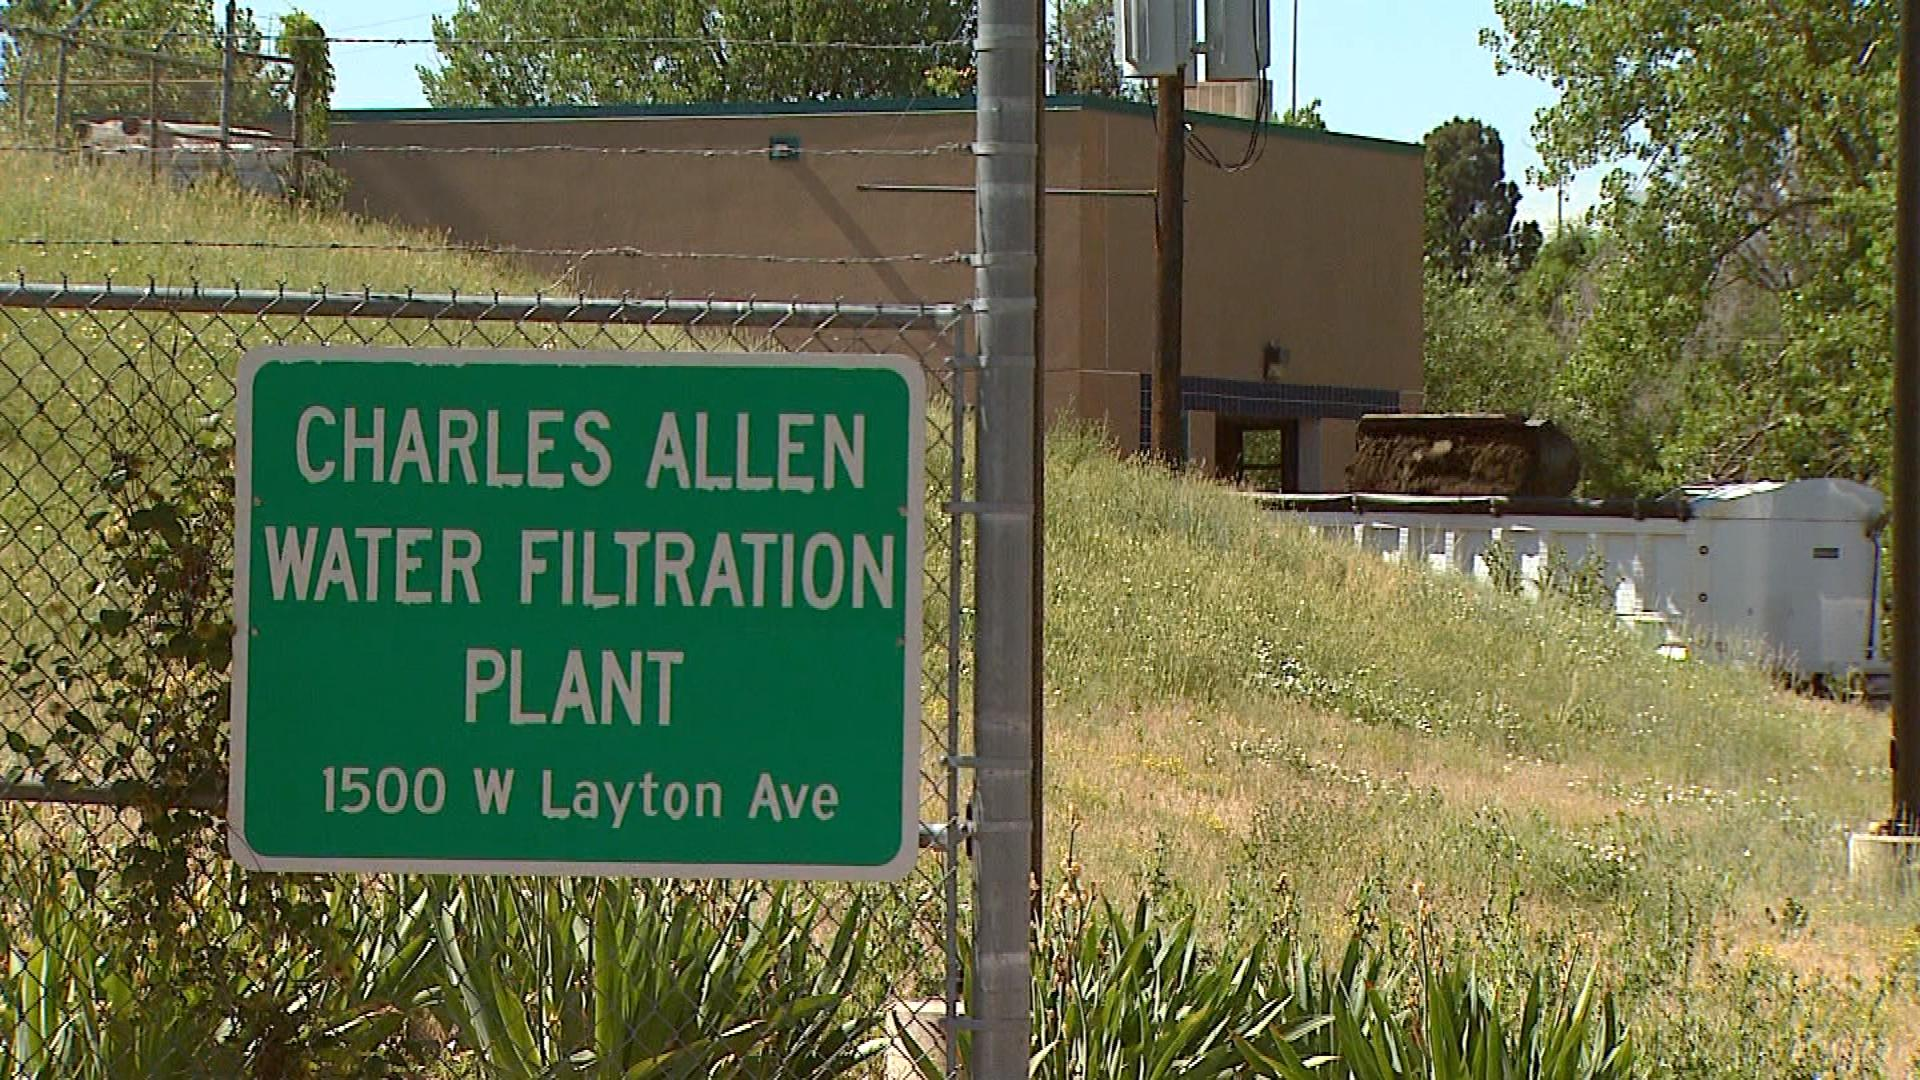 The Charles Allen Water Filtration Plant in Englewood (credit: CBS)